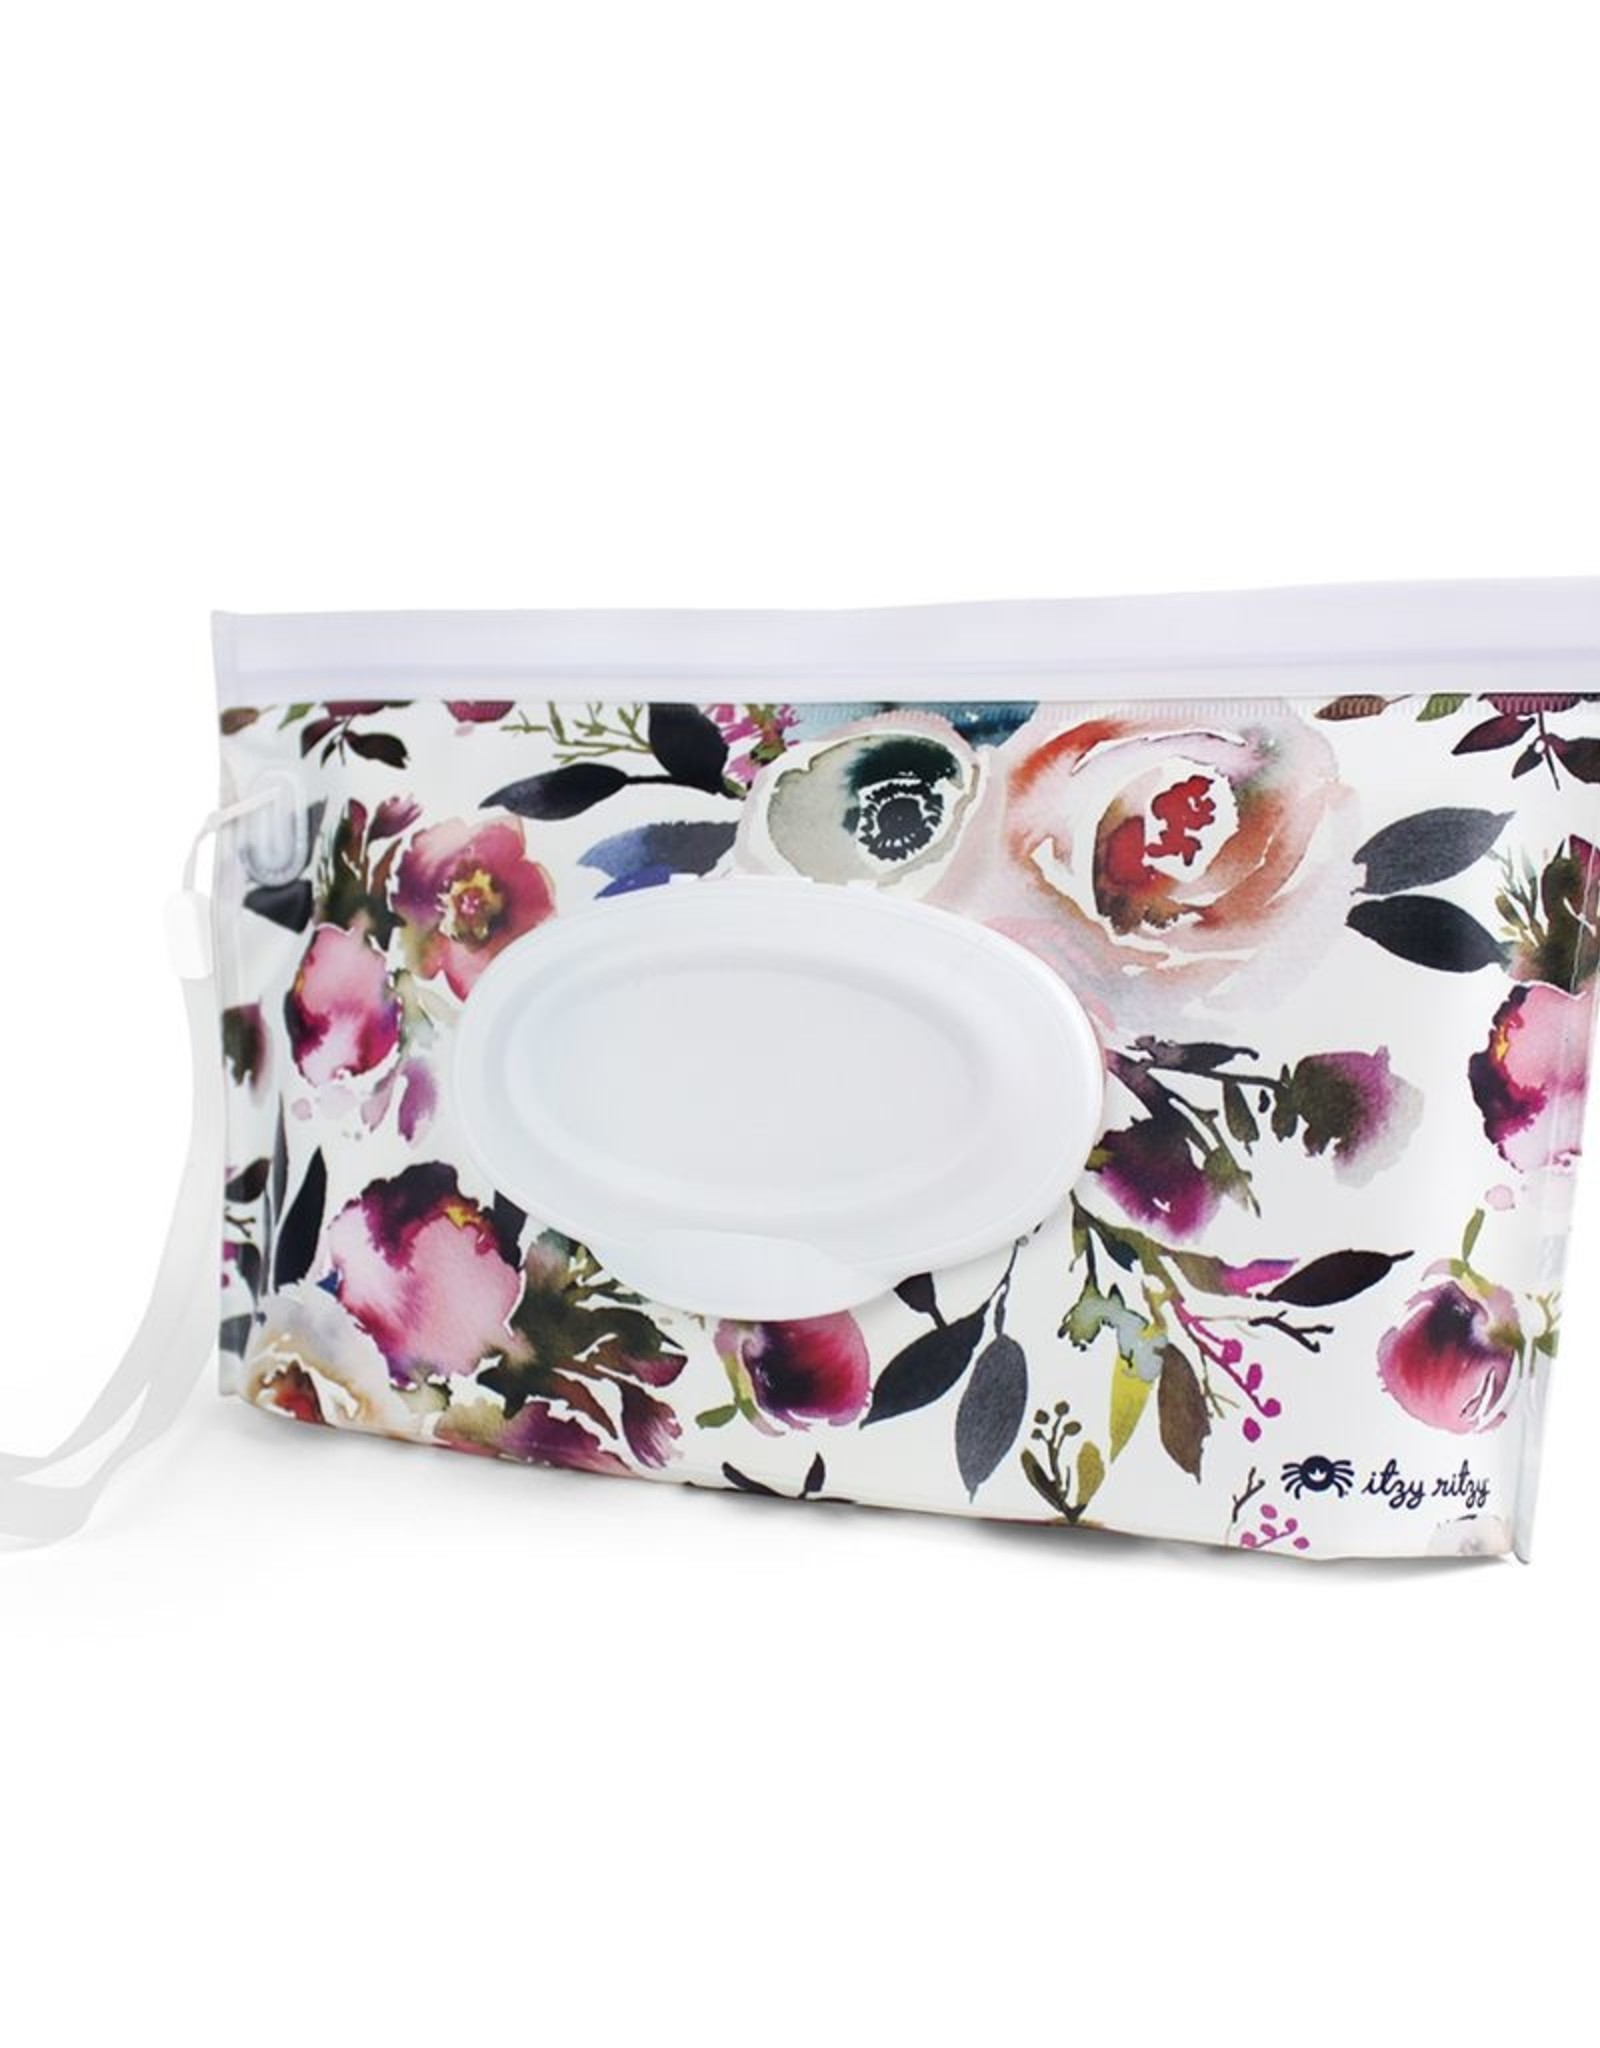 Itzy Ritzy Take and Travel™ Pouch Reusable Wipes Case